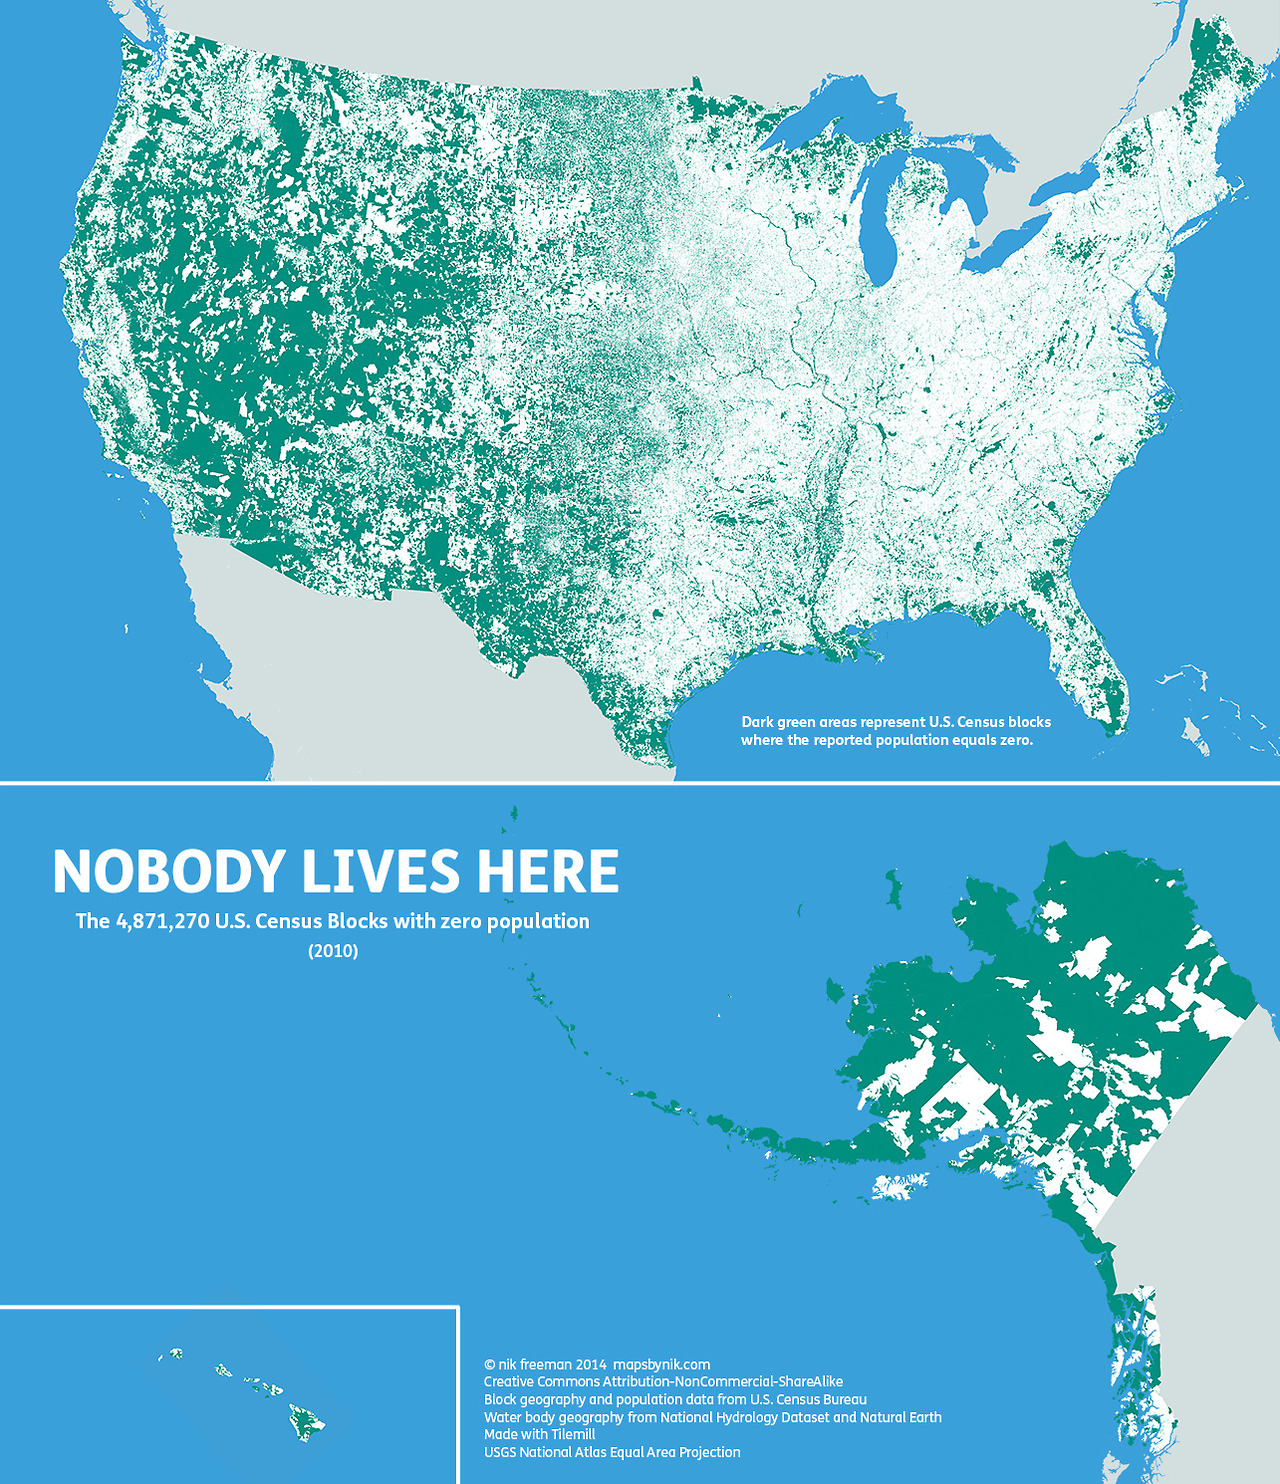 Nobody lives here: The nearly 5 million Census blocks without people…